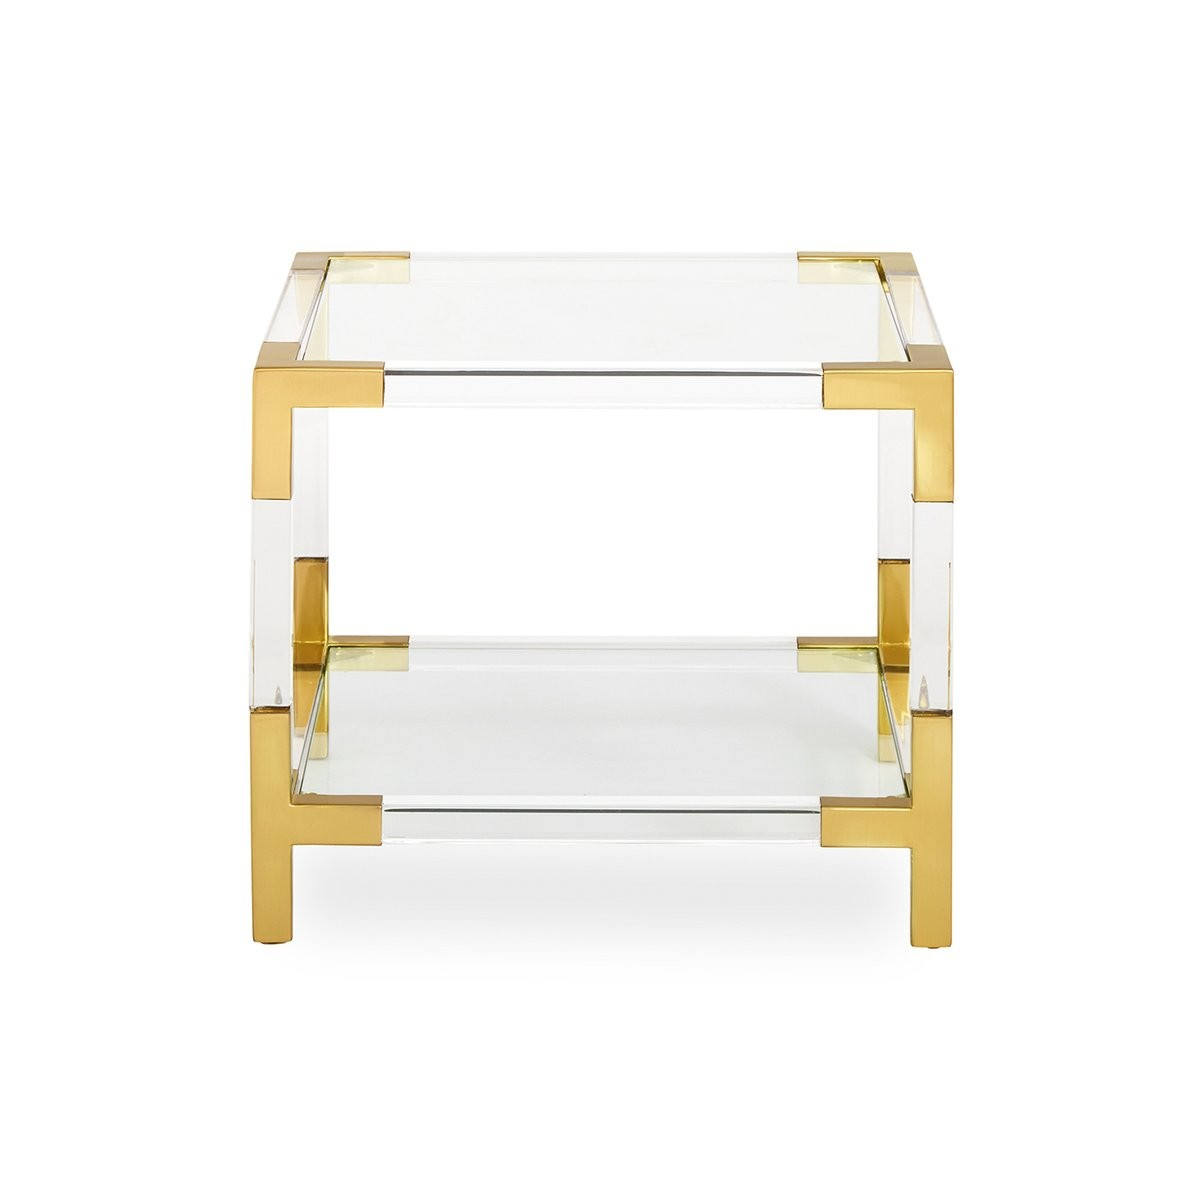 Jonathan Adler I Jacques 2 Tier Accent Table